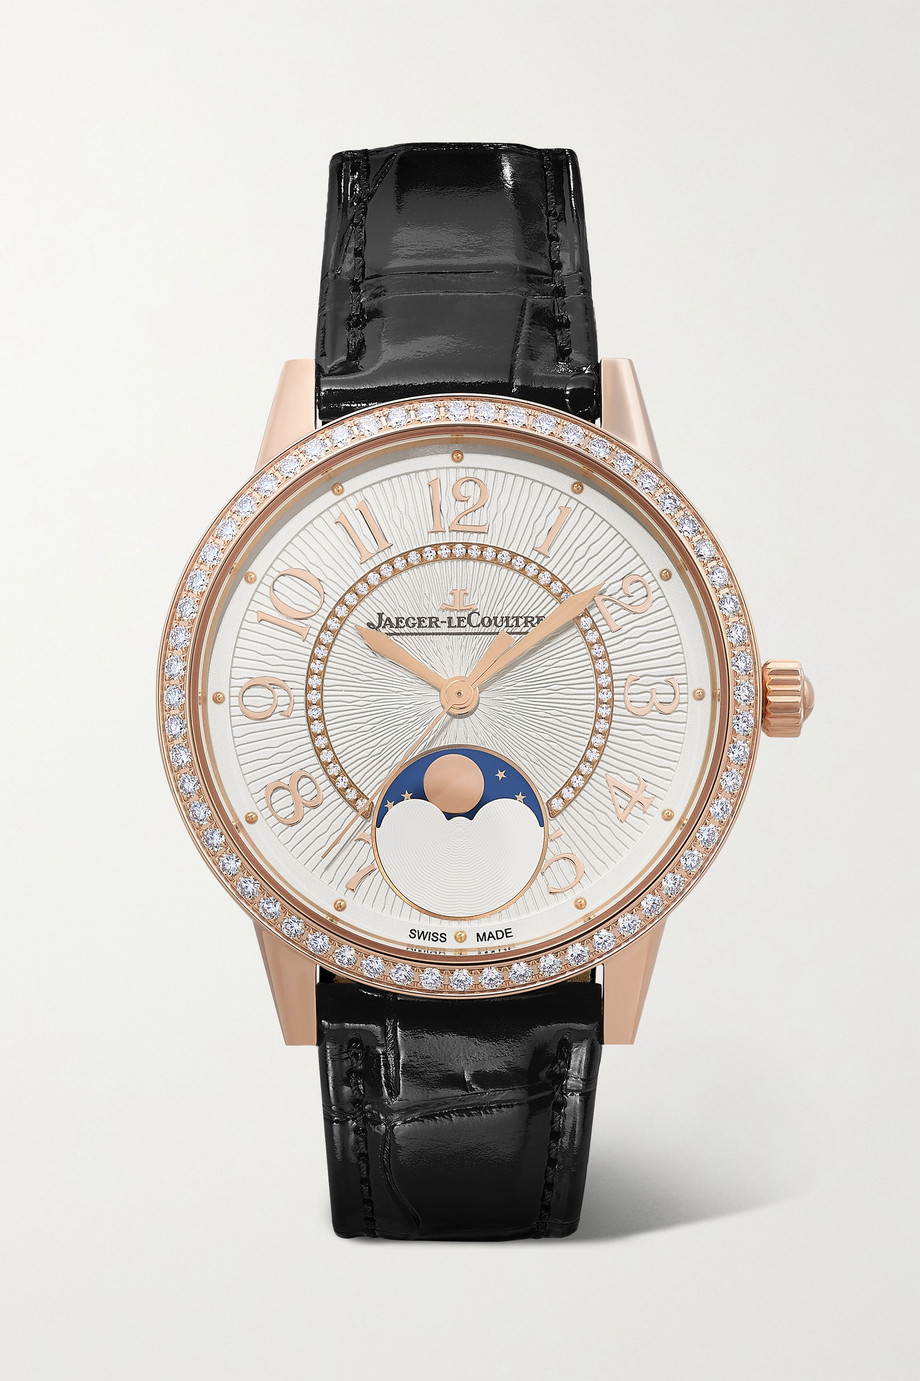 JAEGER-LECOULTRE Rendez-Vous Moon Automatic 34mm medium rose gold, alligator and diamond watch